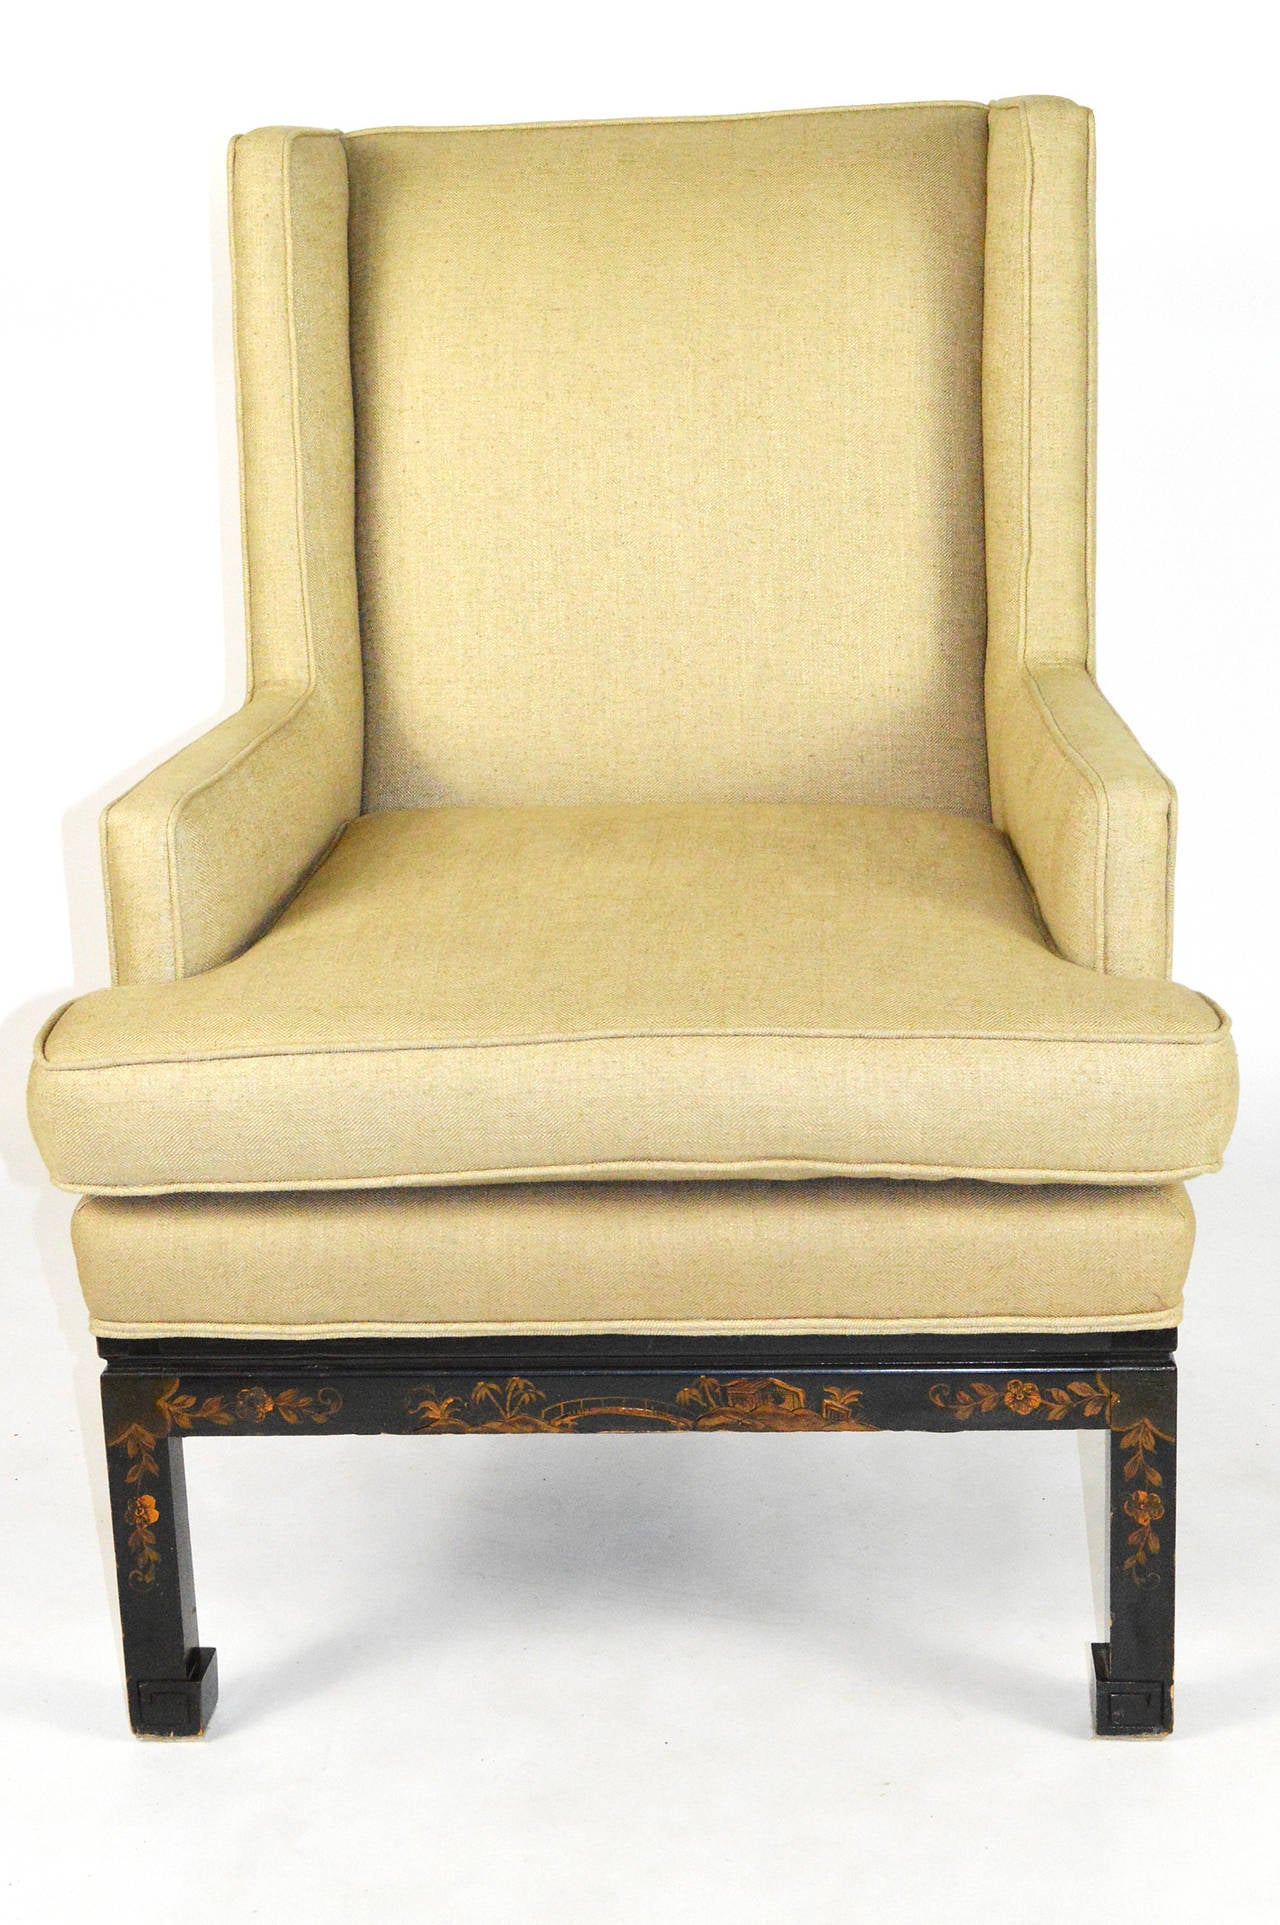 American Mid-20th Century Chinese Chippendale Style Wingback Armchair For Sale